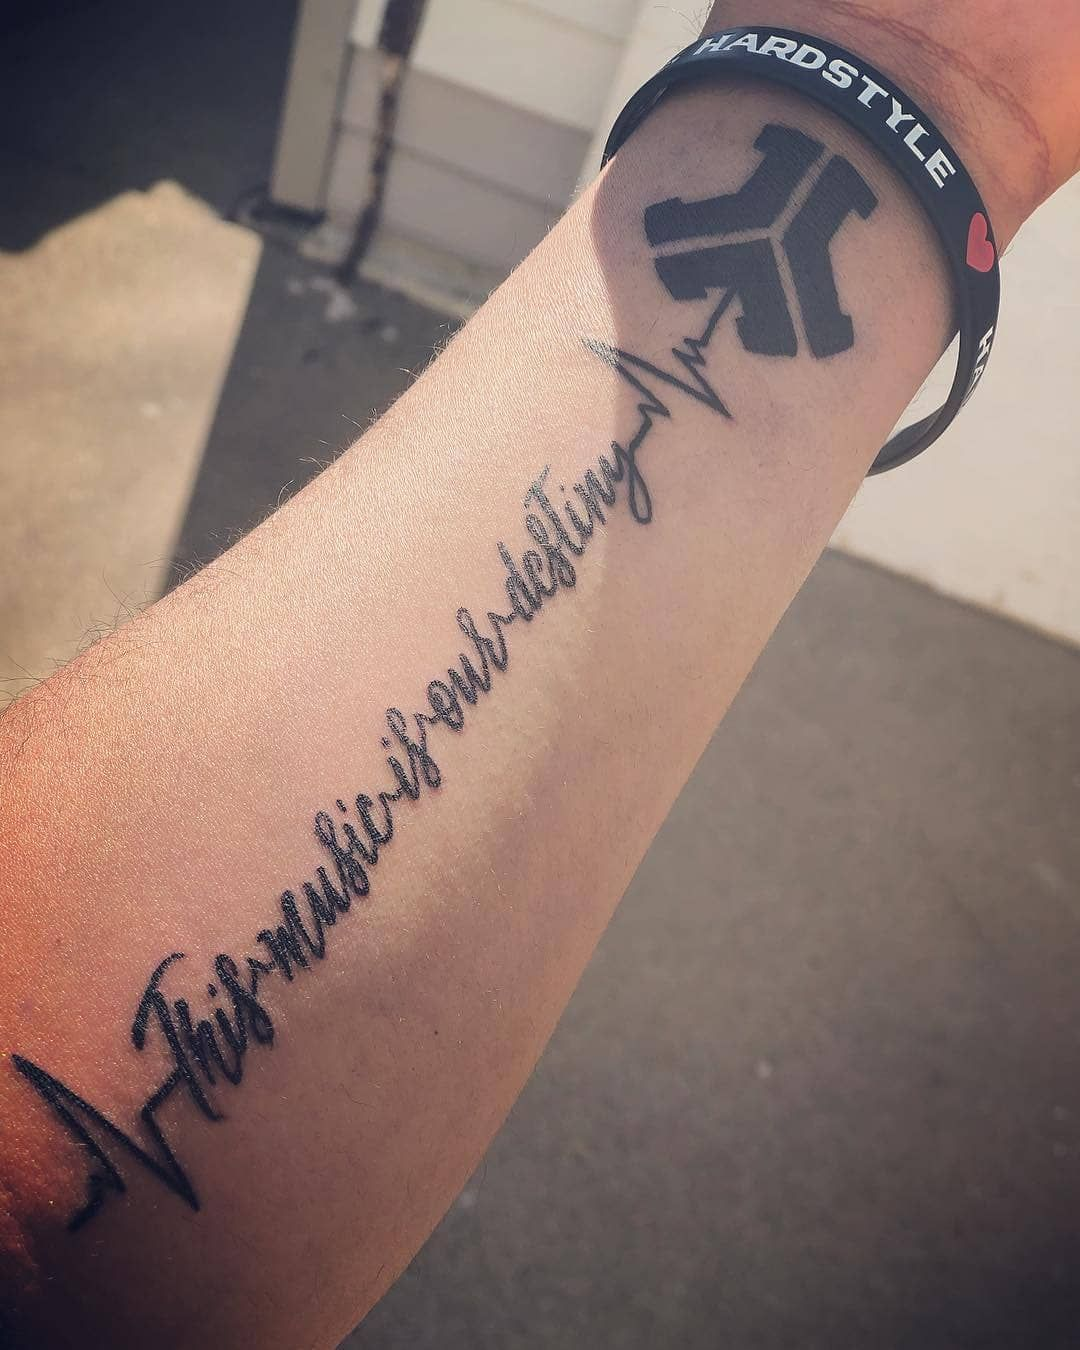 This Music is our Destiny! | Hardstyle Tattoo | Defqon.1